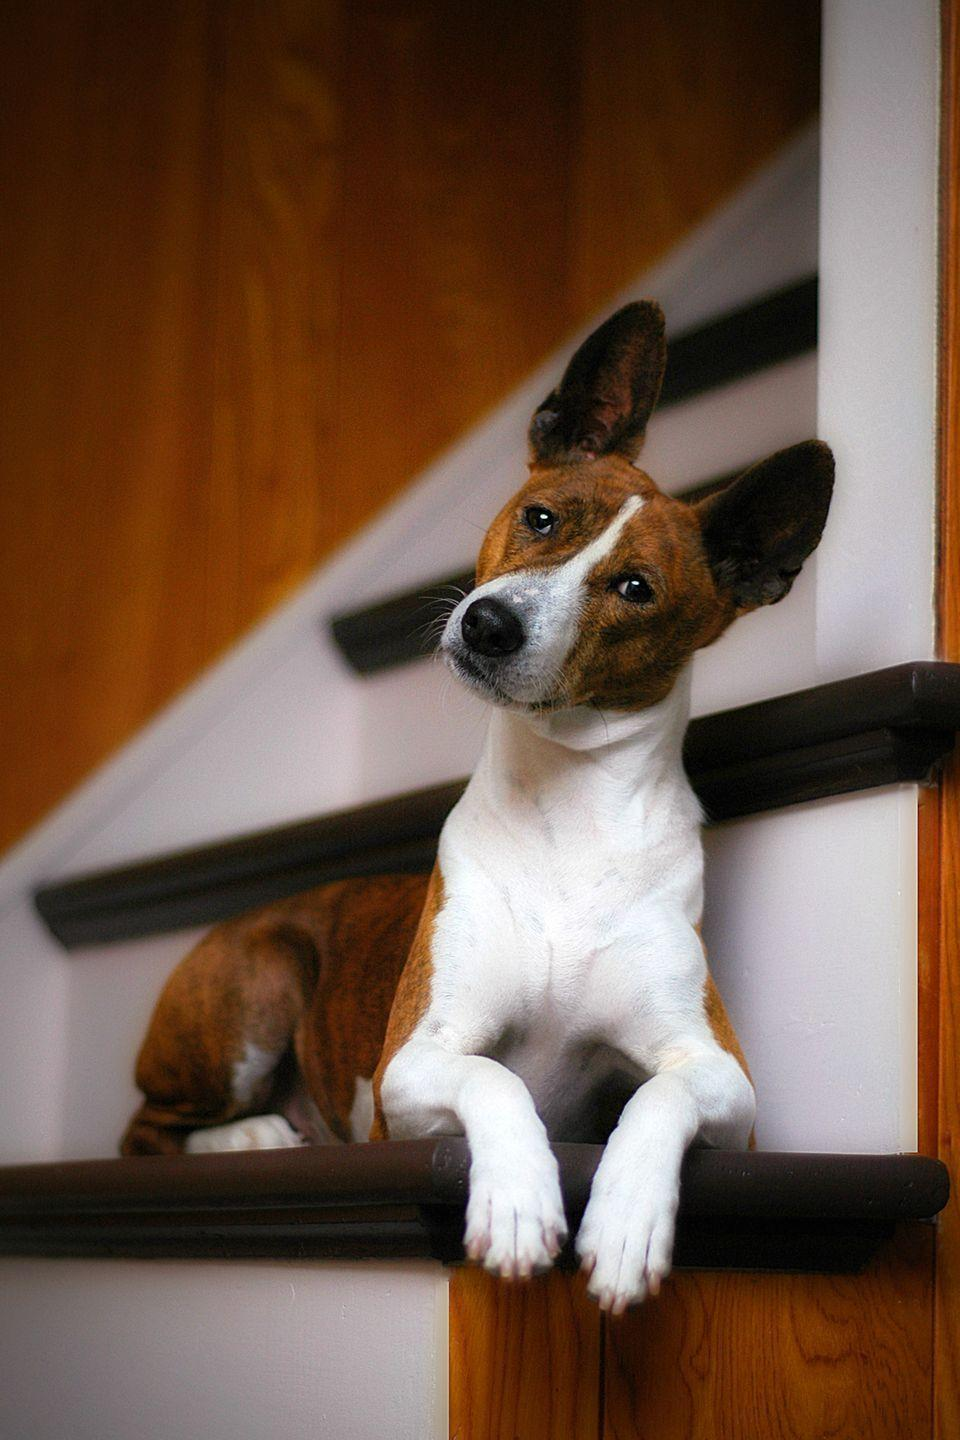 """<p>Basenjis originated as African hunting dogs, but they don't howl and yap like a lot of hounds have earned a reputation for doing. They have short, fine hair that sheds minimally, so you'll barely know they live with you. <a href=""""https://www.goodhousekeeping.com/life/pets/g26100022/healthiest-dog-breeds/?slide=3"""" rel=""""nofollow noopener"""" target=""""_blank"""" data-ylk=""""slk:Basenjis"""" class=""""link rapid-noclick-resp"""">Basenjis</a> also have a catlike demeanor, and these fastidious little creatures will even groom themselves. </p>"""